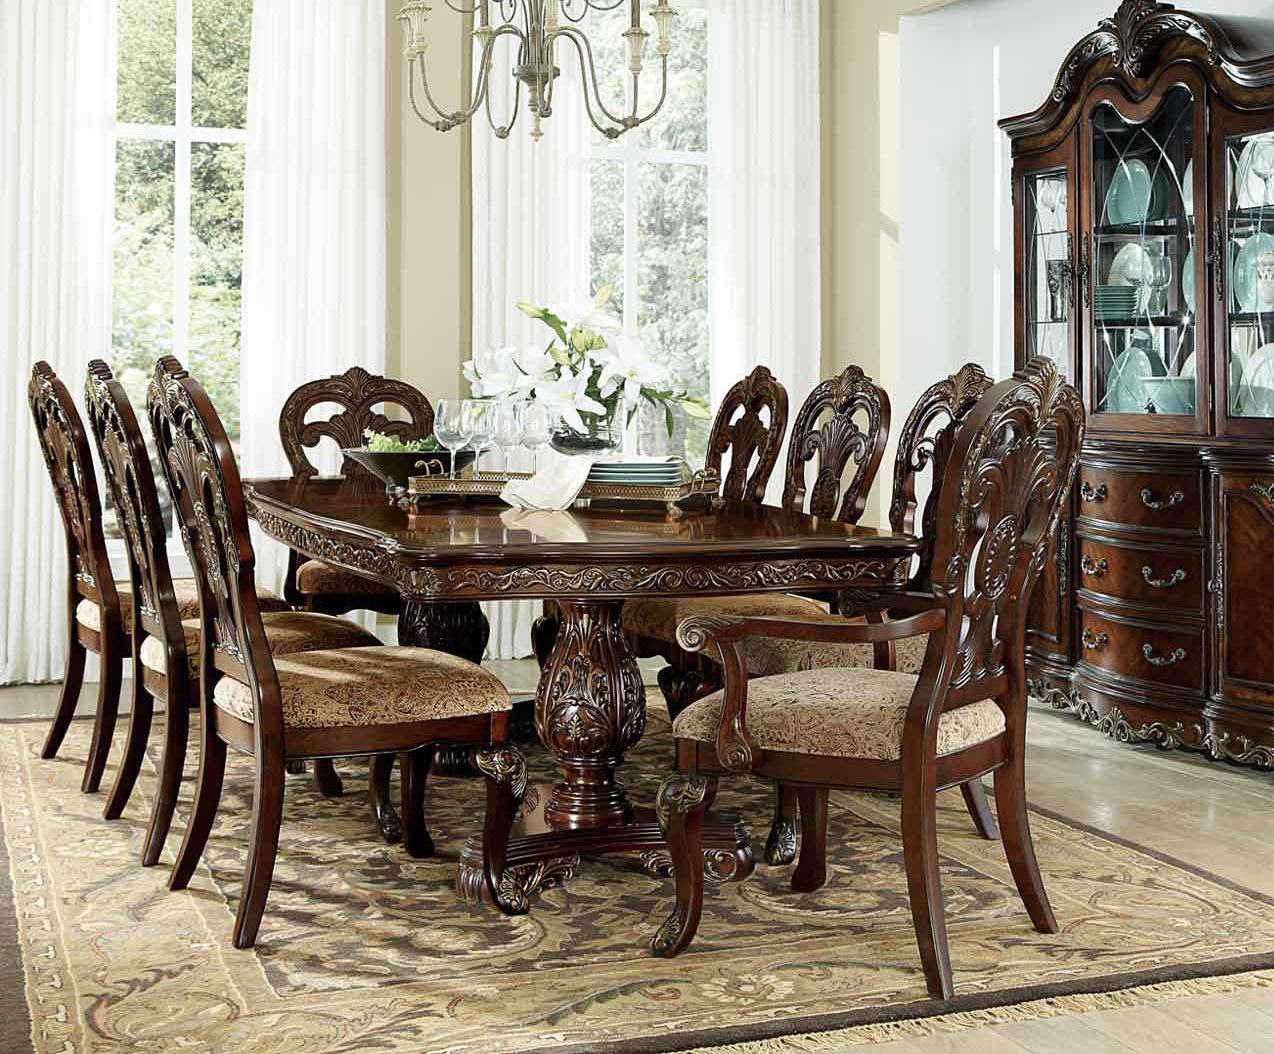 Homelegance Deryn Park Cherry Wood Finish 9 Piece Dining Table Set